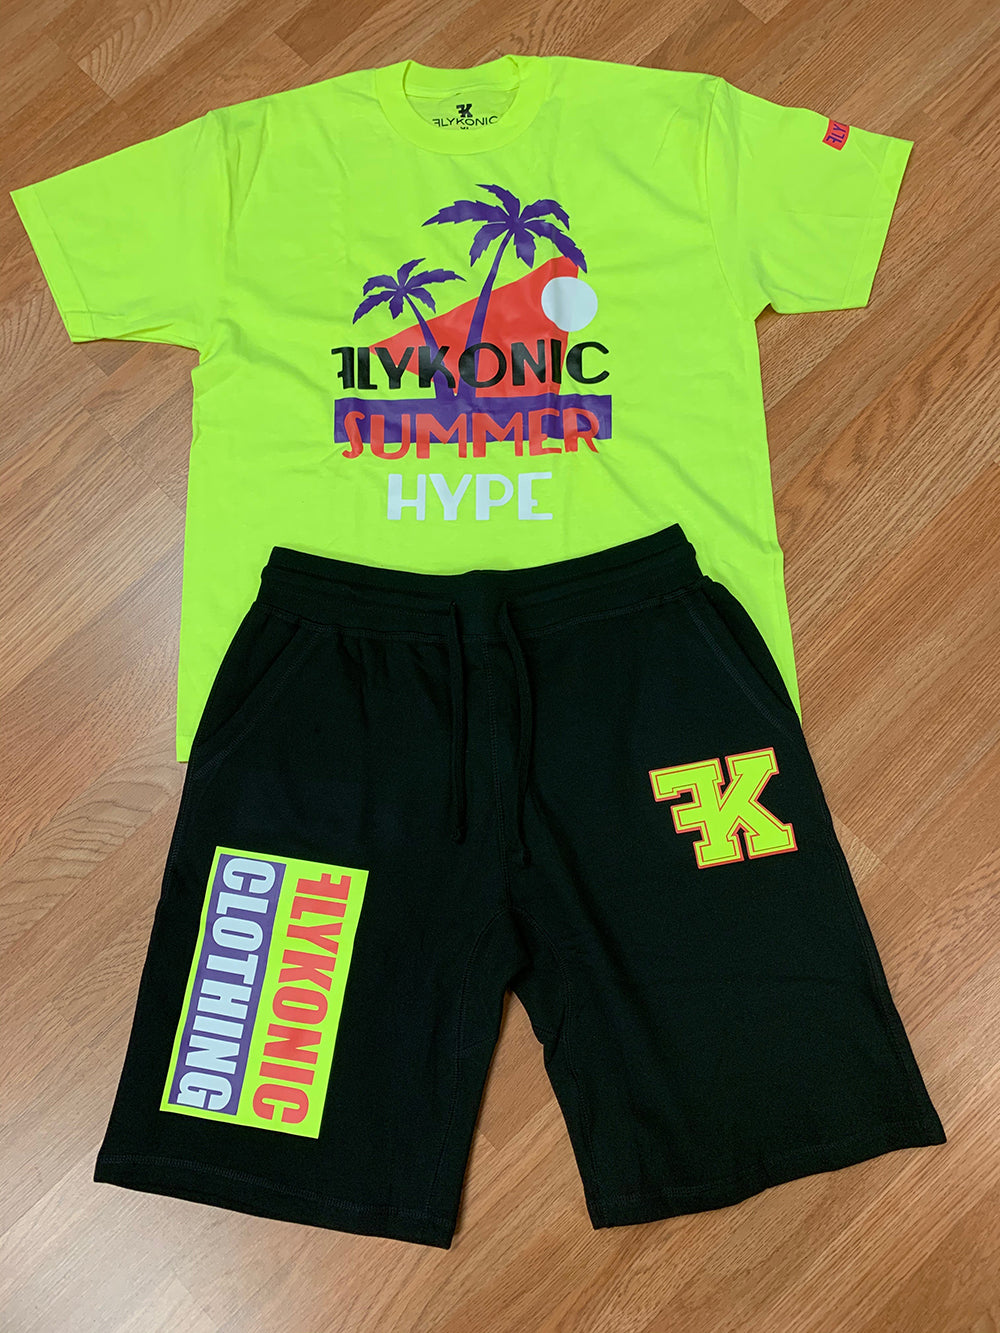 Flykonic Summer Hype Neon Outfit